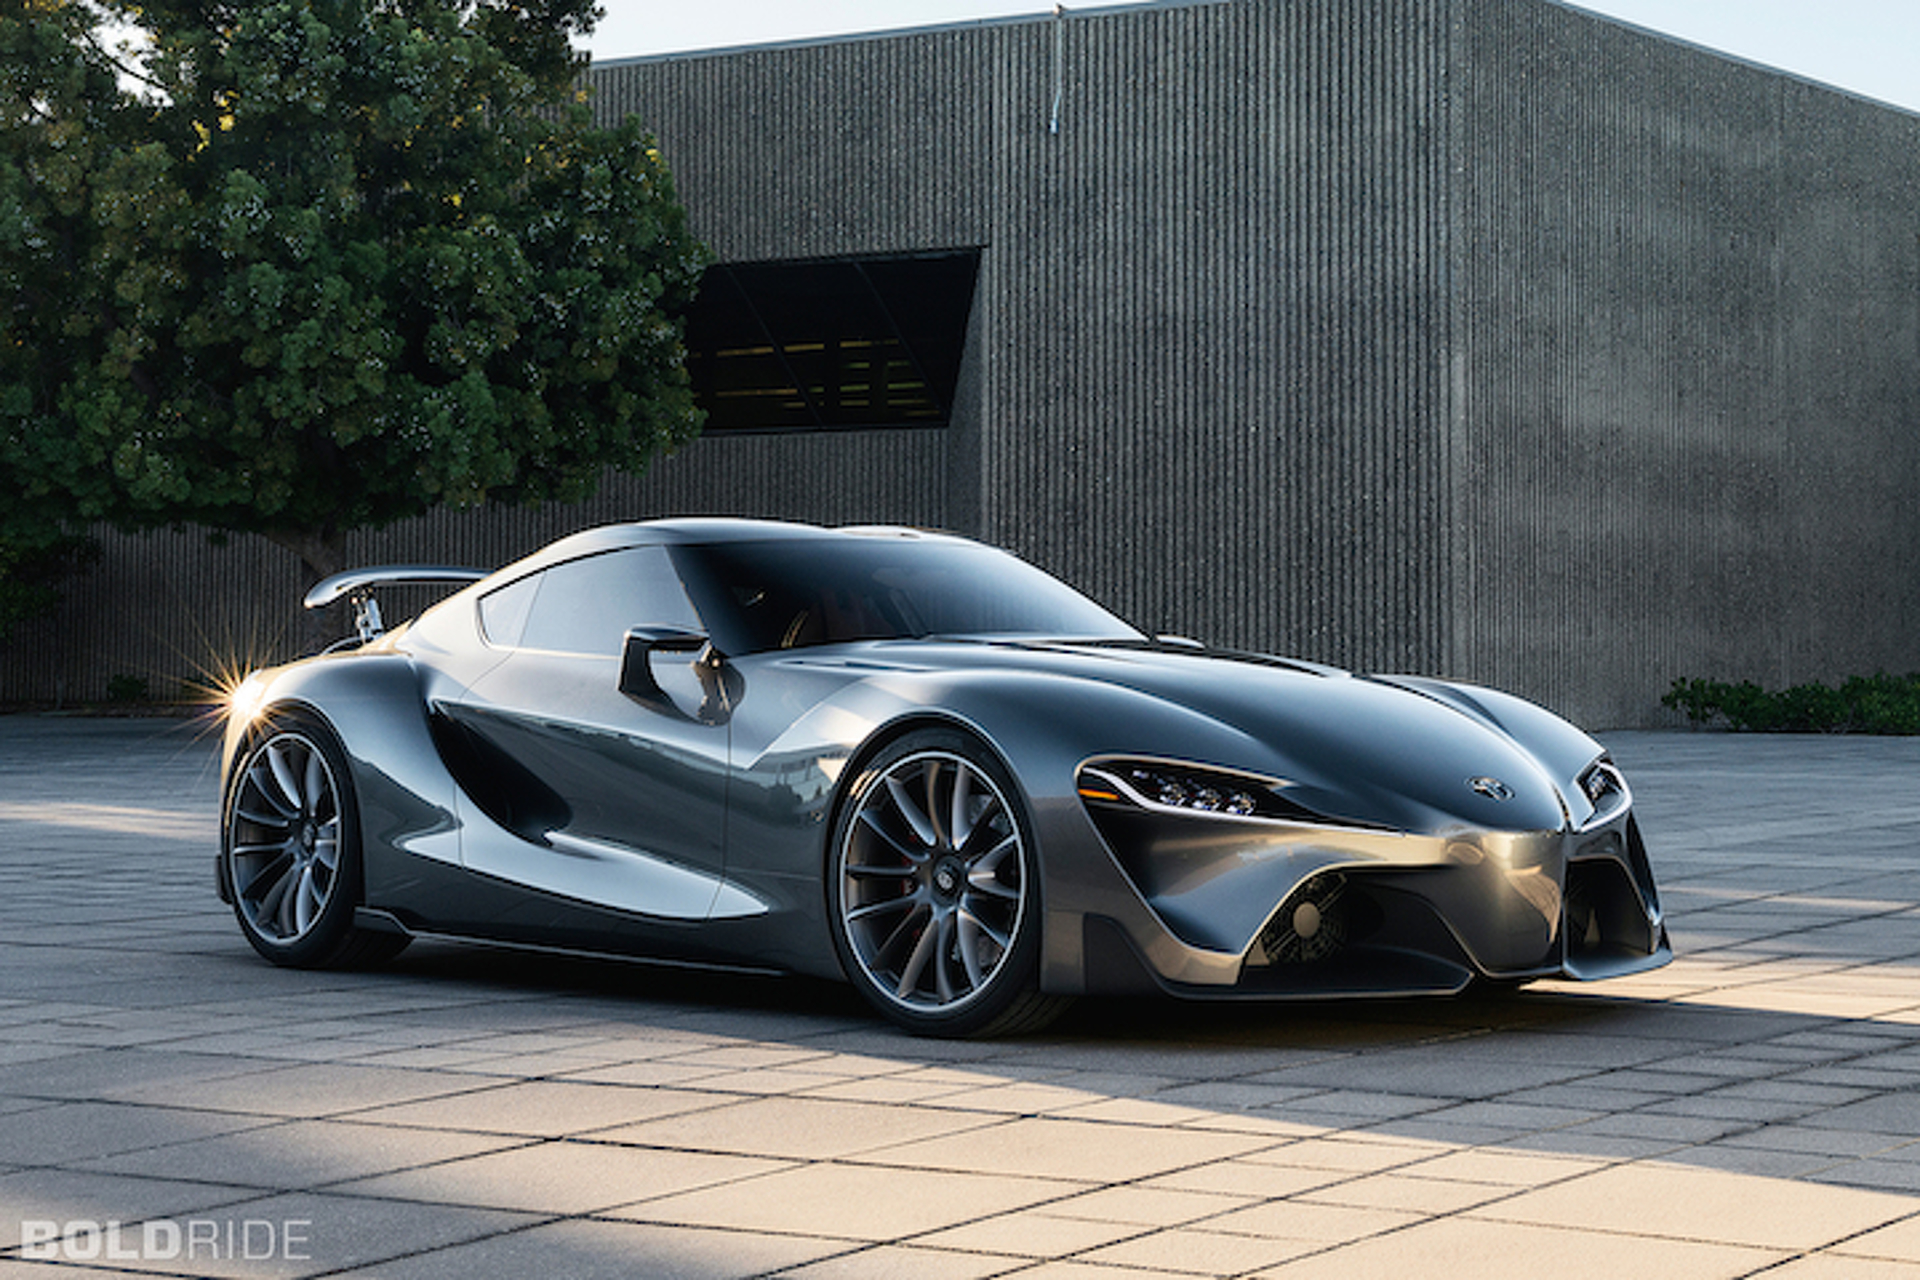 8 Cars to Look Forward to in 2015